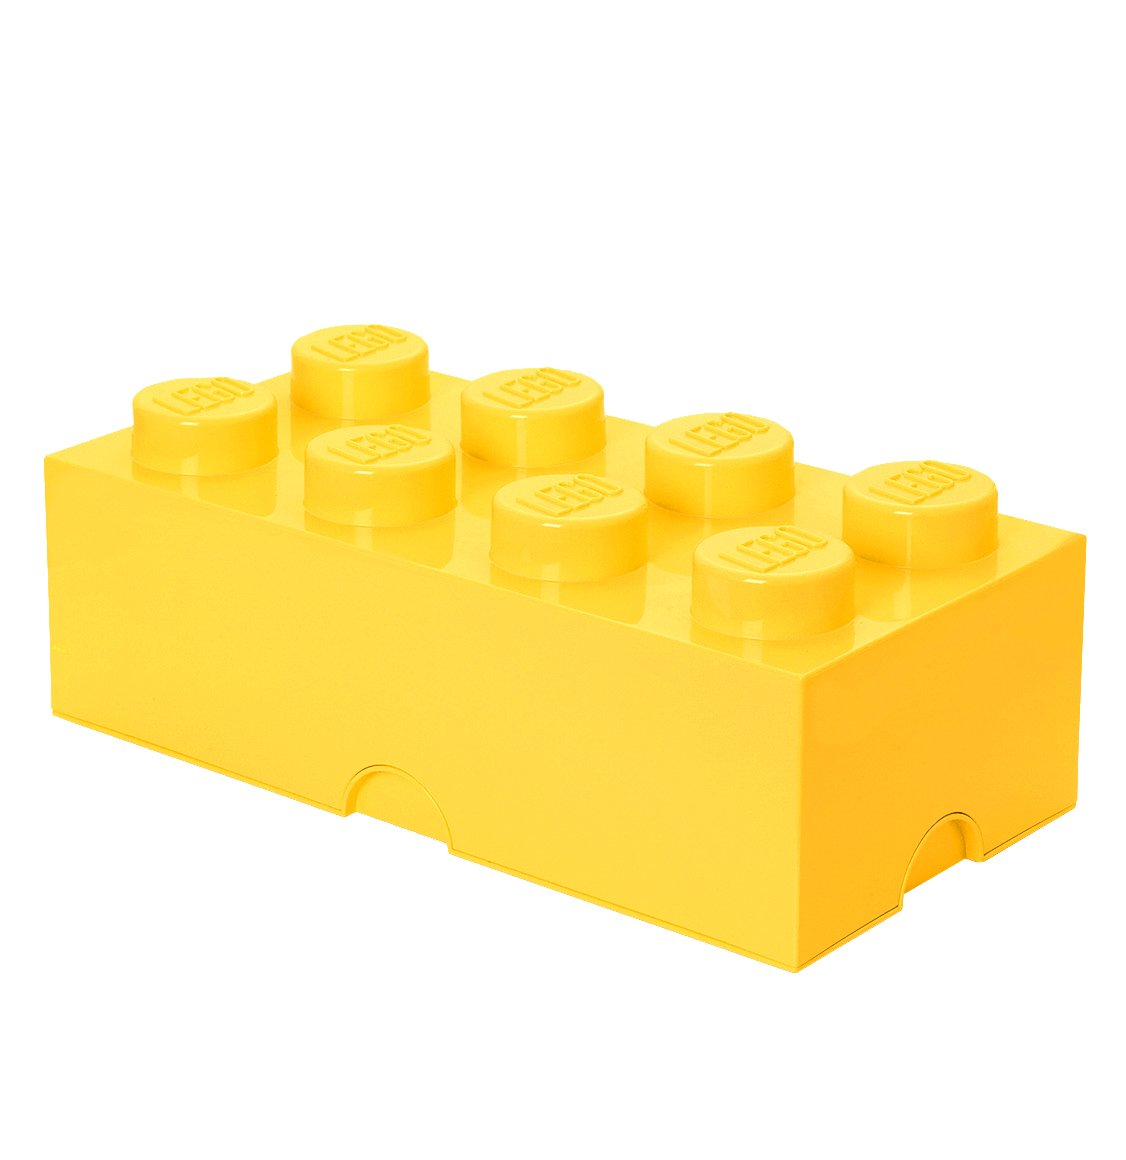 1126x1160 Lego Storage Brick 8 Yellow